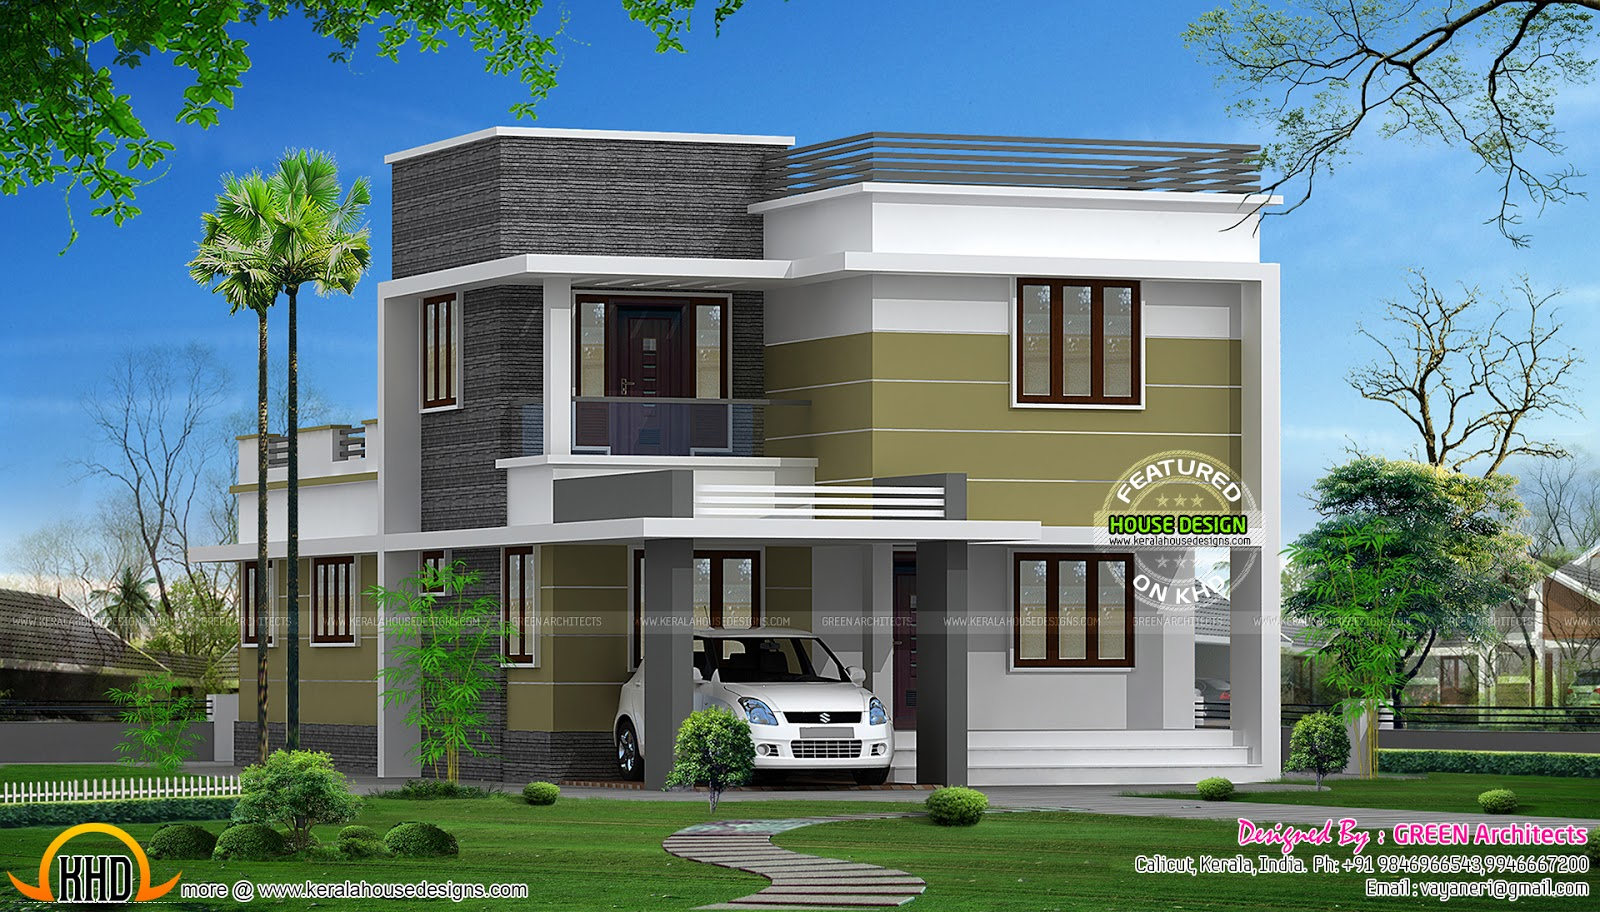 186 sq m small double storied house in kerala kerala for Beautiful small house interiors